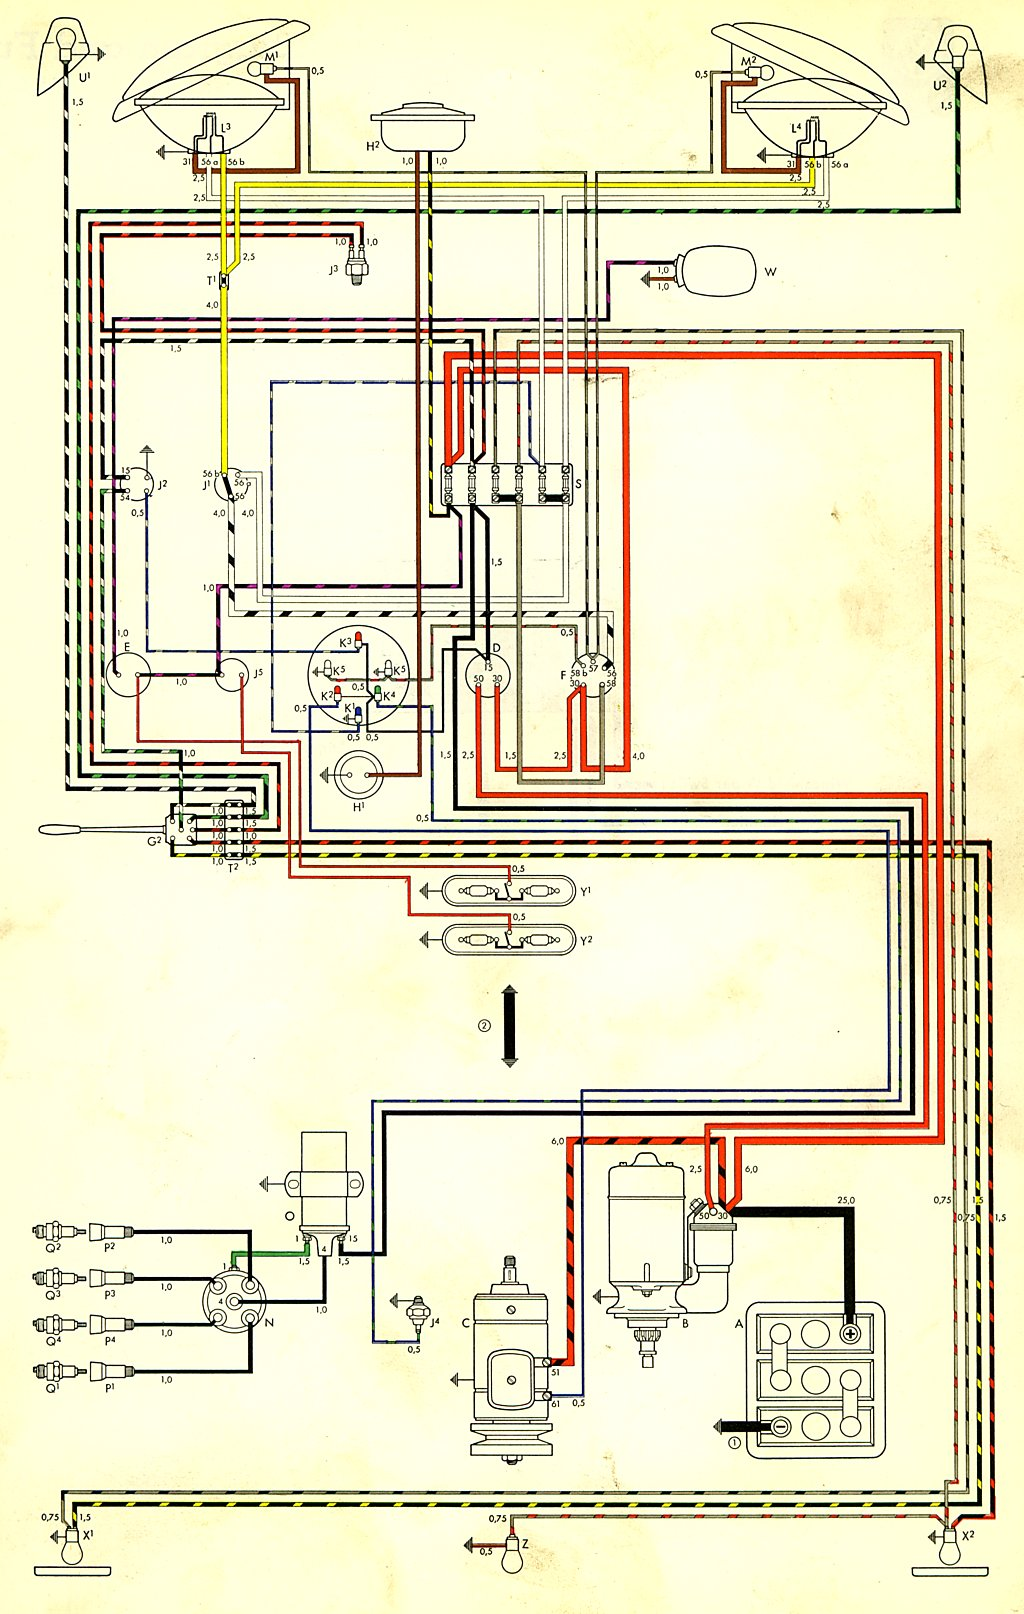 bus_59_USA 1959 bus wiring diagram (usa) thegoldenbug com 1968 vw bug wiring diagram at bayanpartner.co